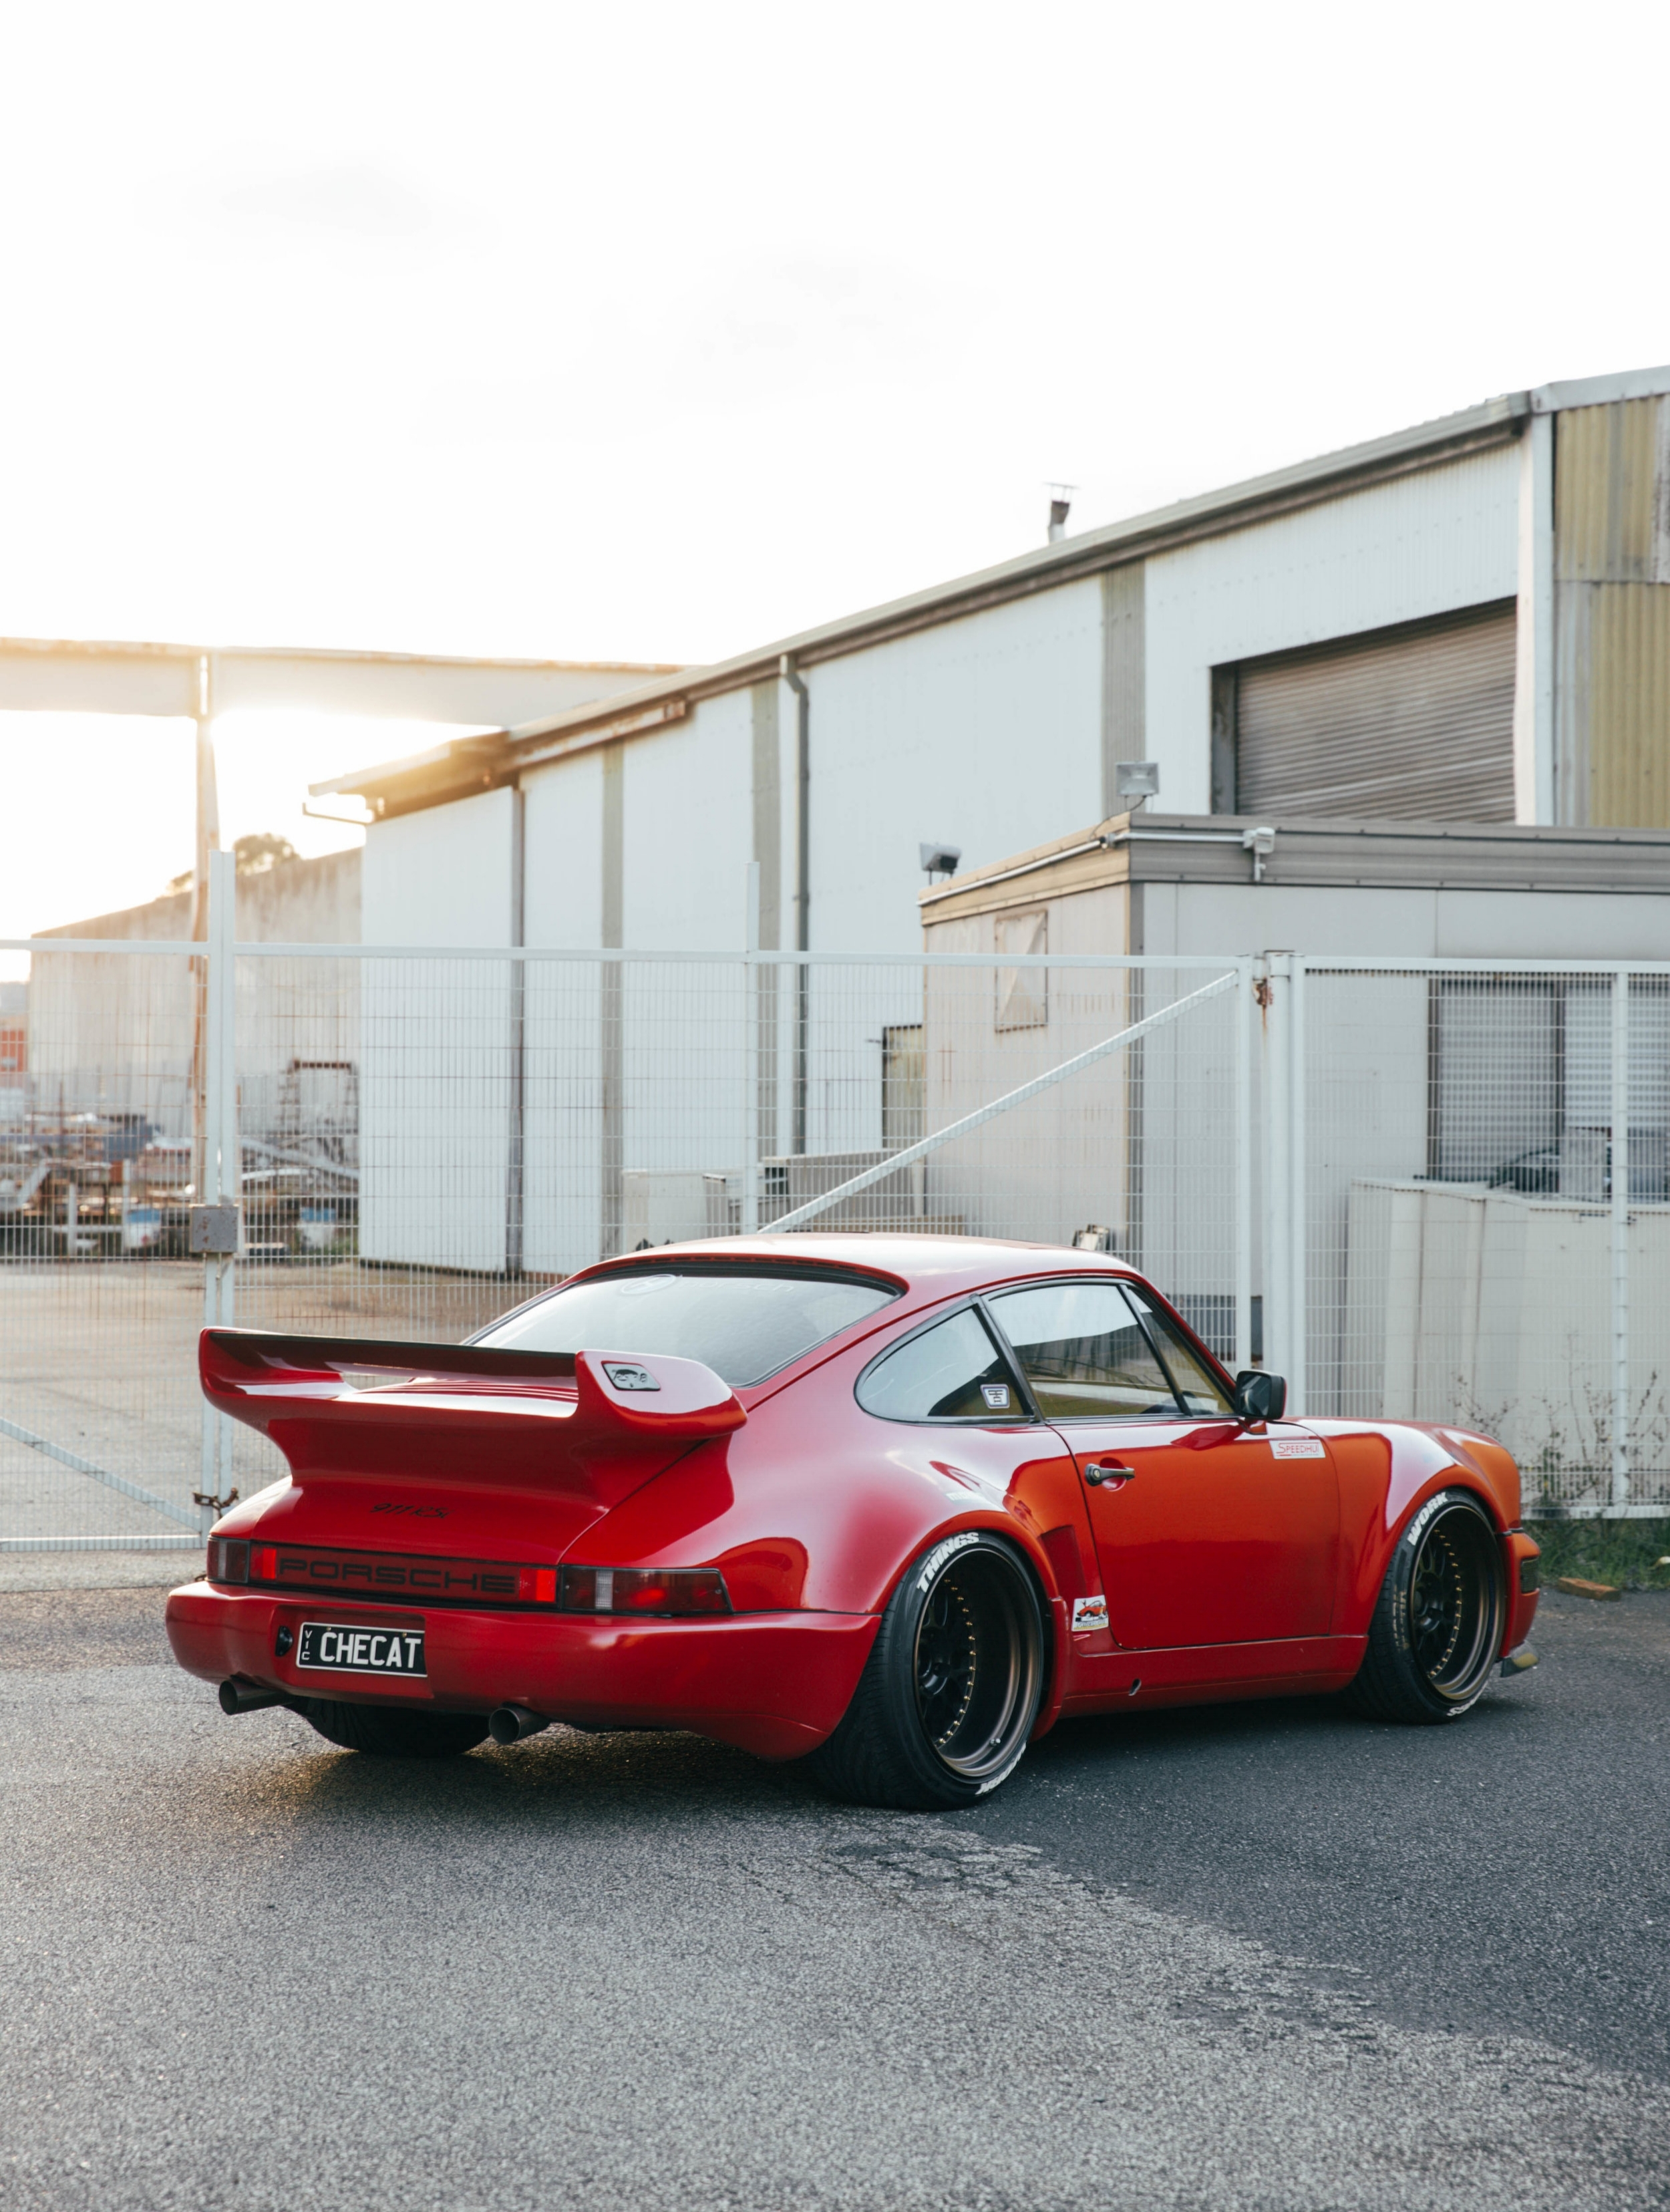 This  911 RSI  turned up during the RWB build in Melbourne, and I instantly fell in love with it!